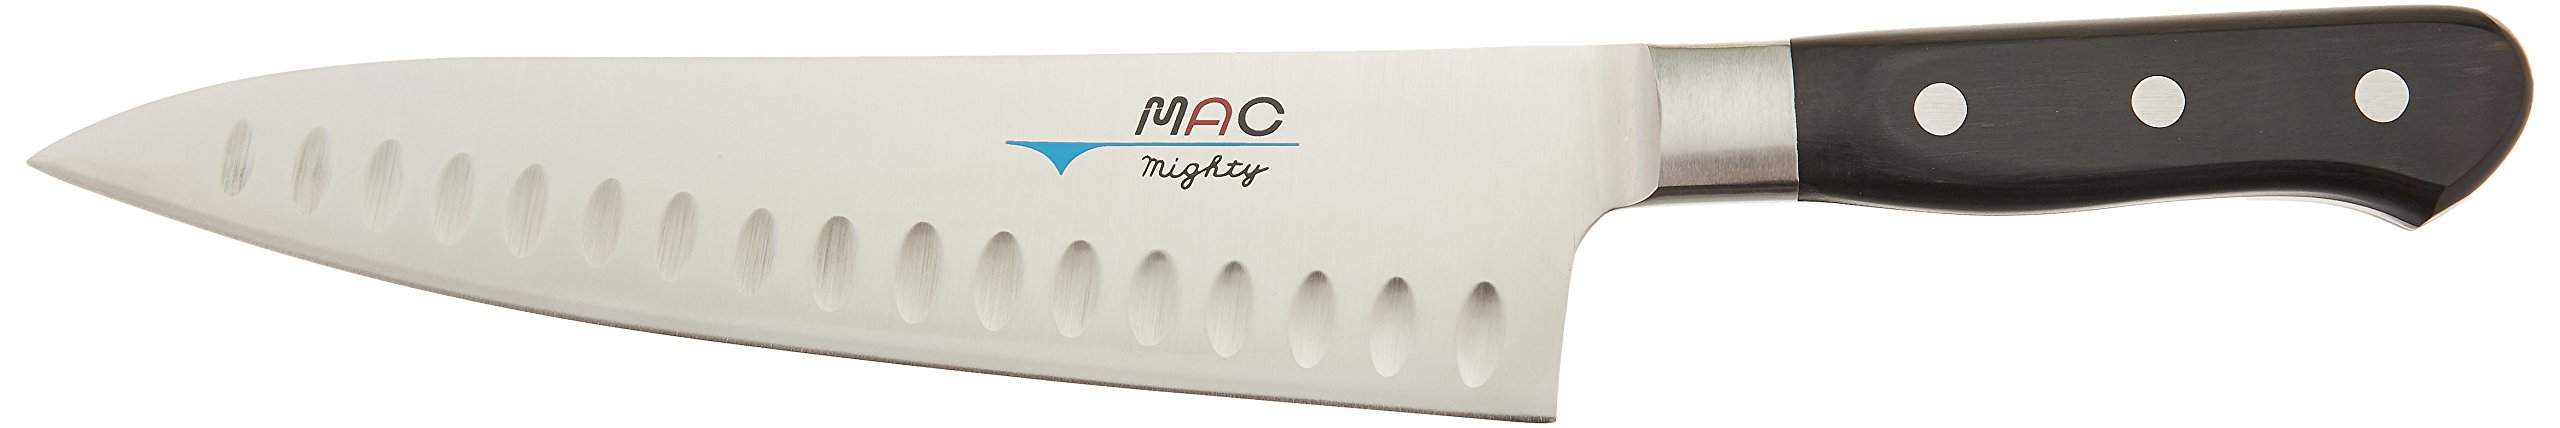 Mac Knife MTH-80 Professional Hollow Edge Chef's Knife, 8 Inch, Silver by Mac Knife